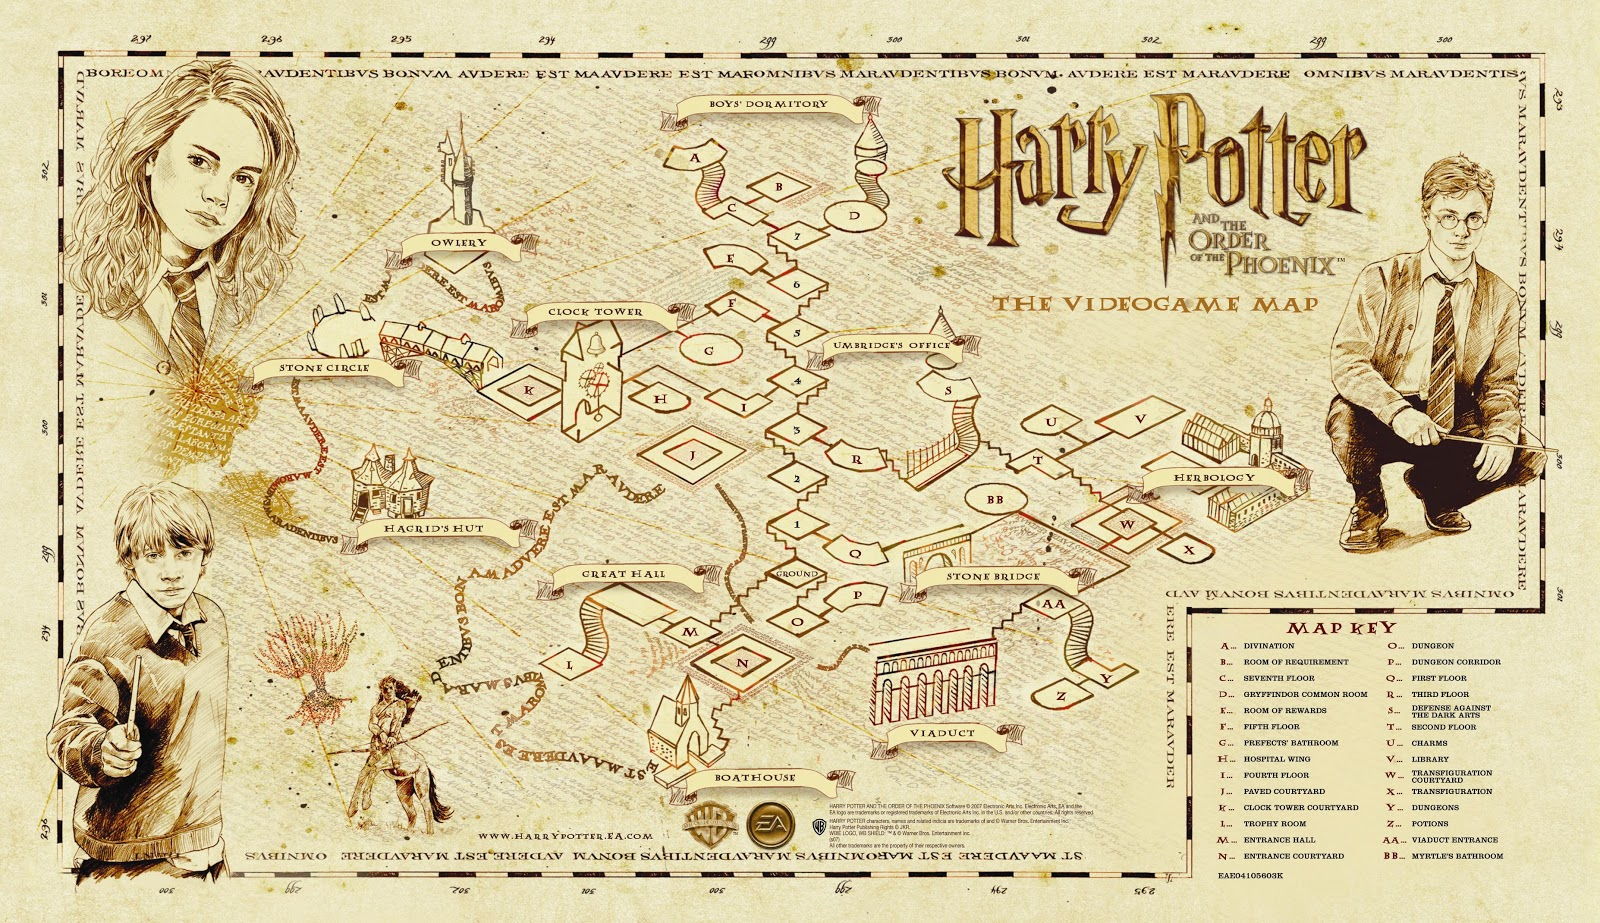 marauder's map  harry potter wiki  fandom powered by wikia - special abilities of the map